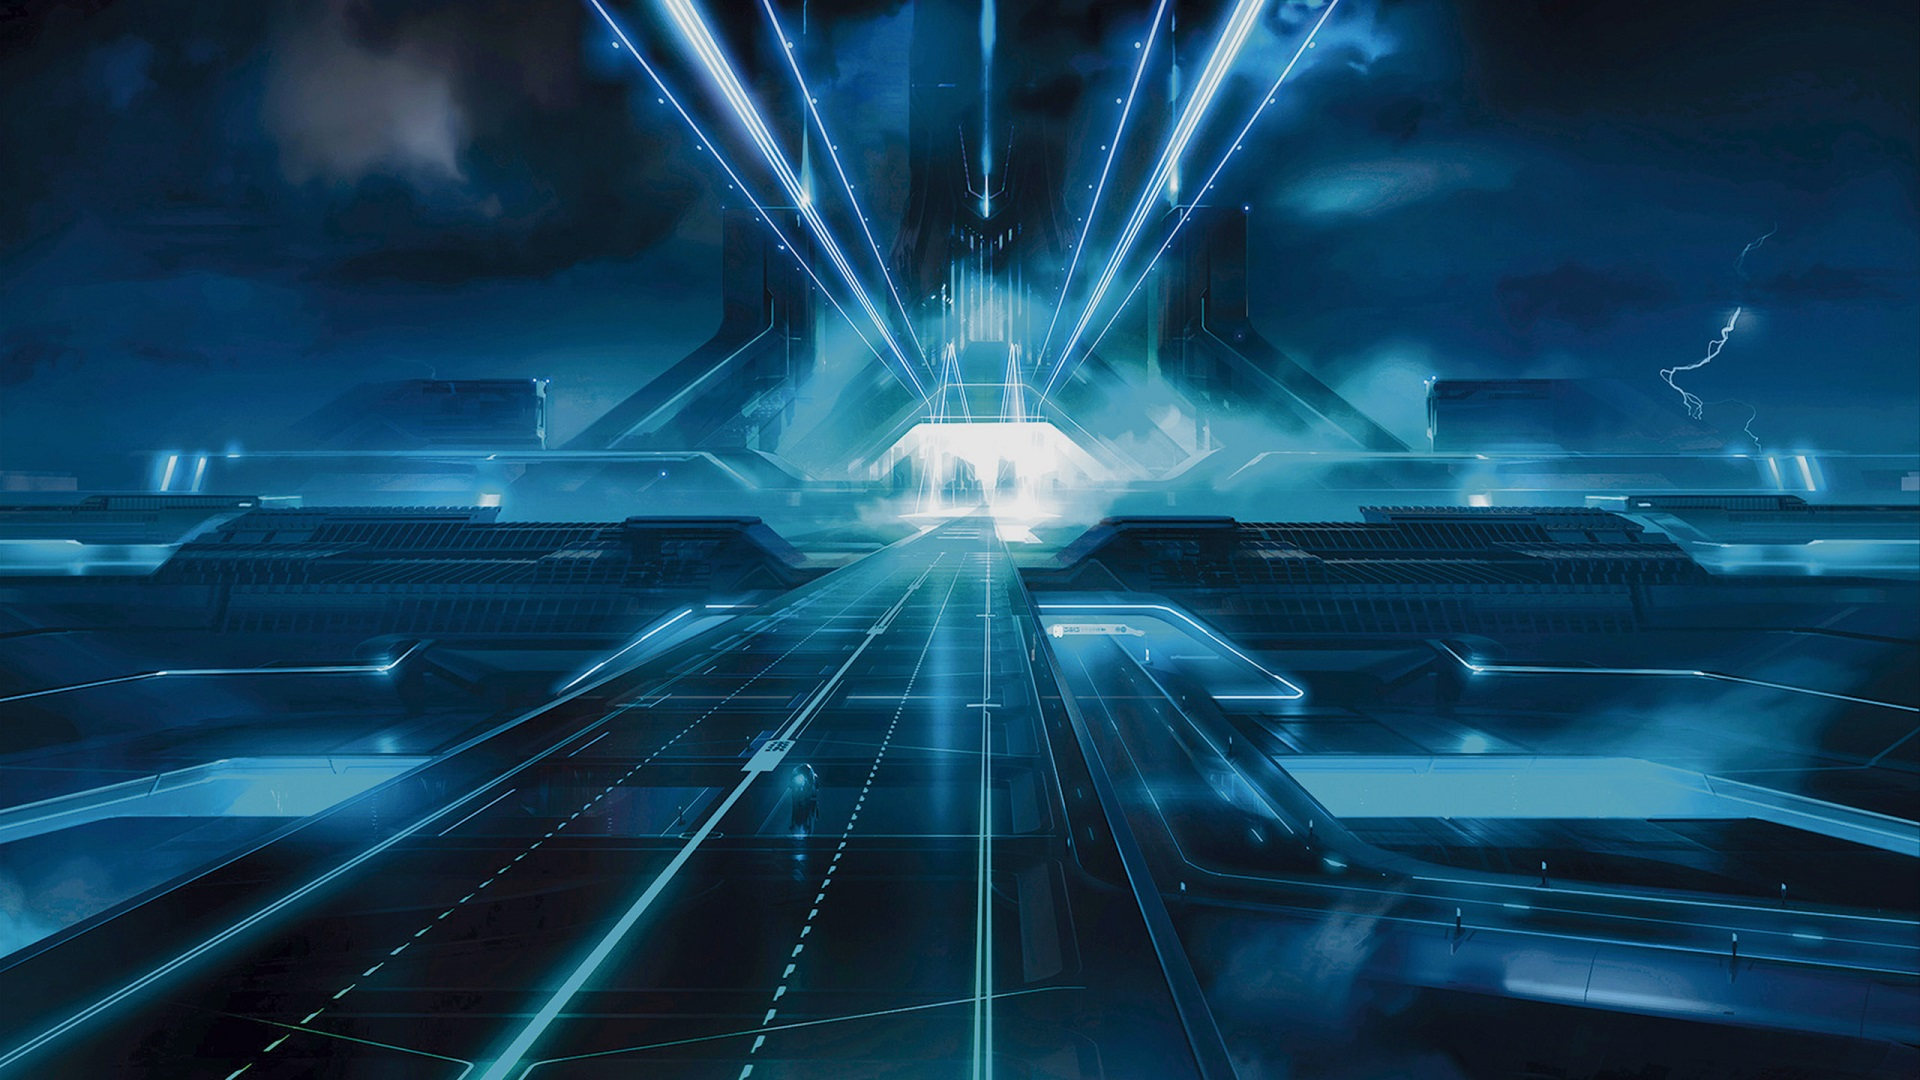 Tron Legacy Full Hd Fond D 233 Cran And Arri 232 Re Plan